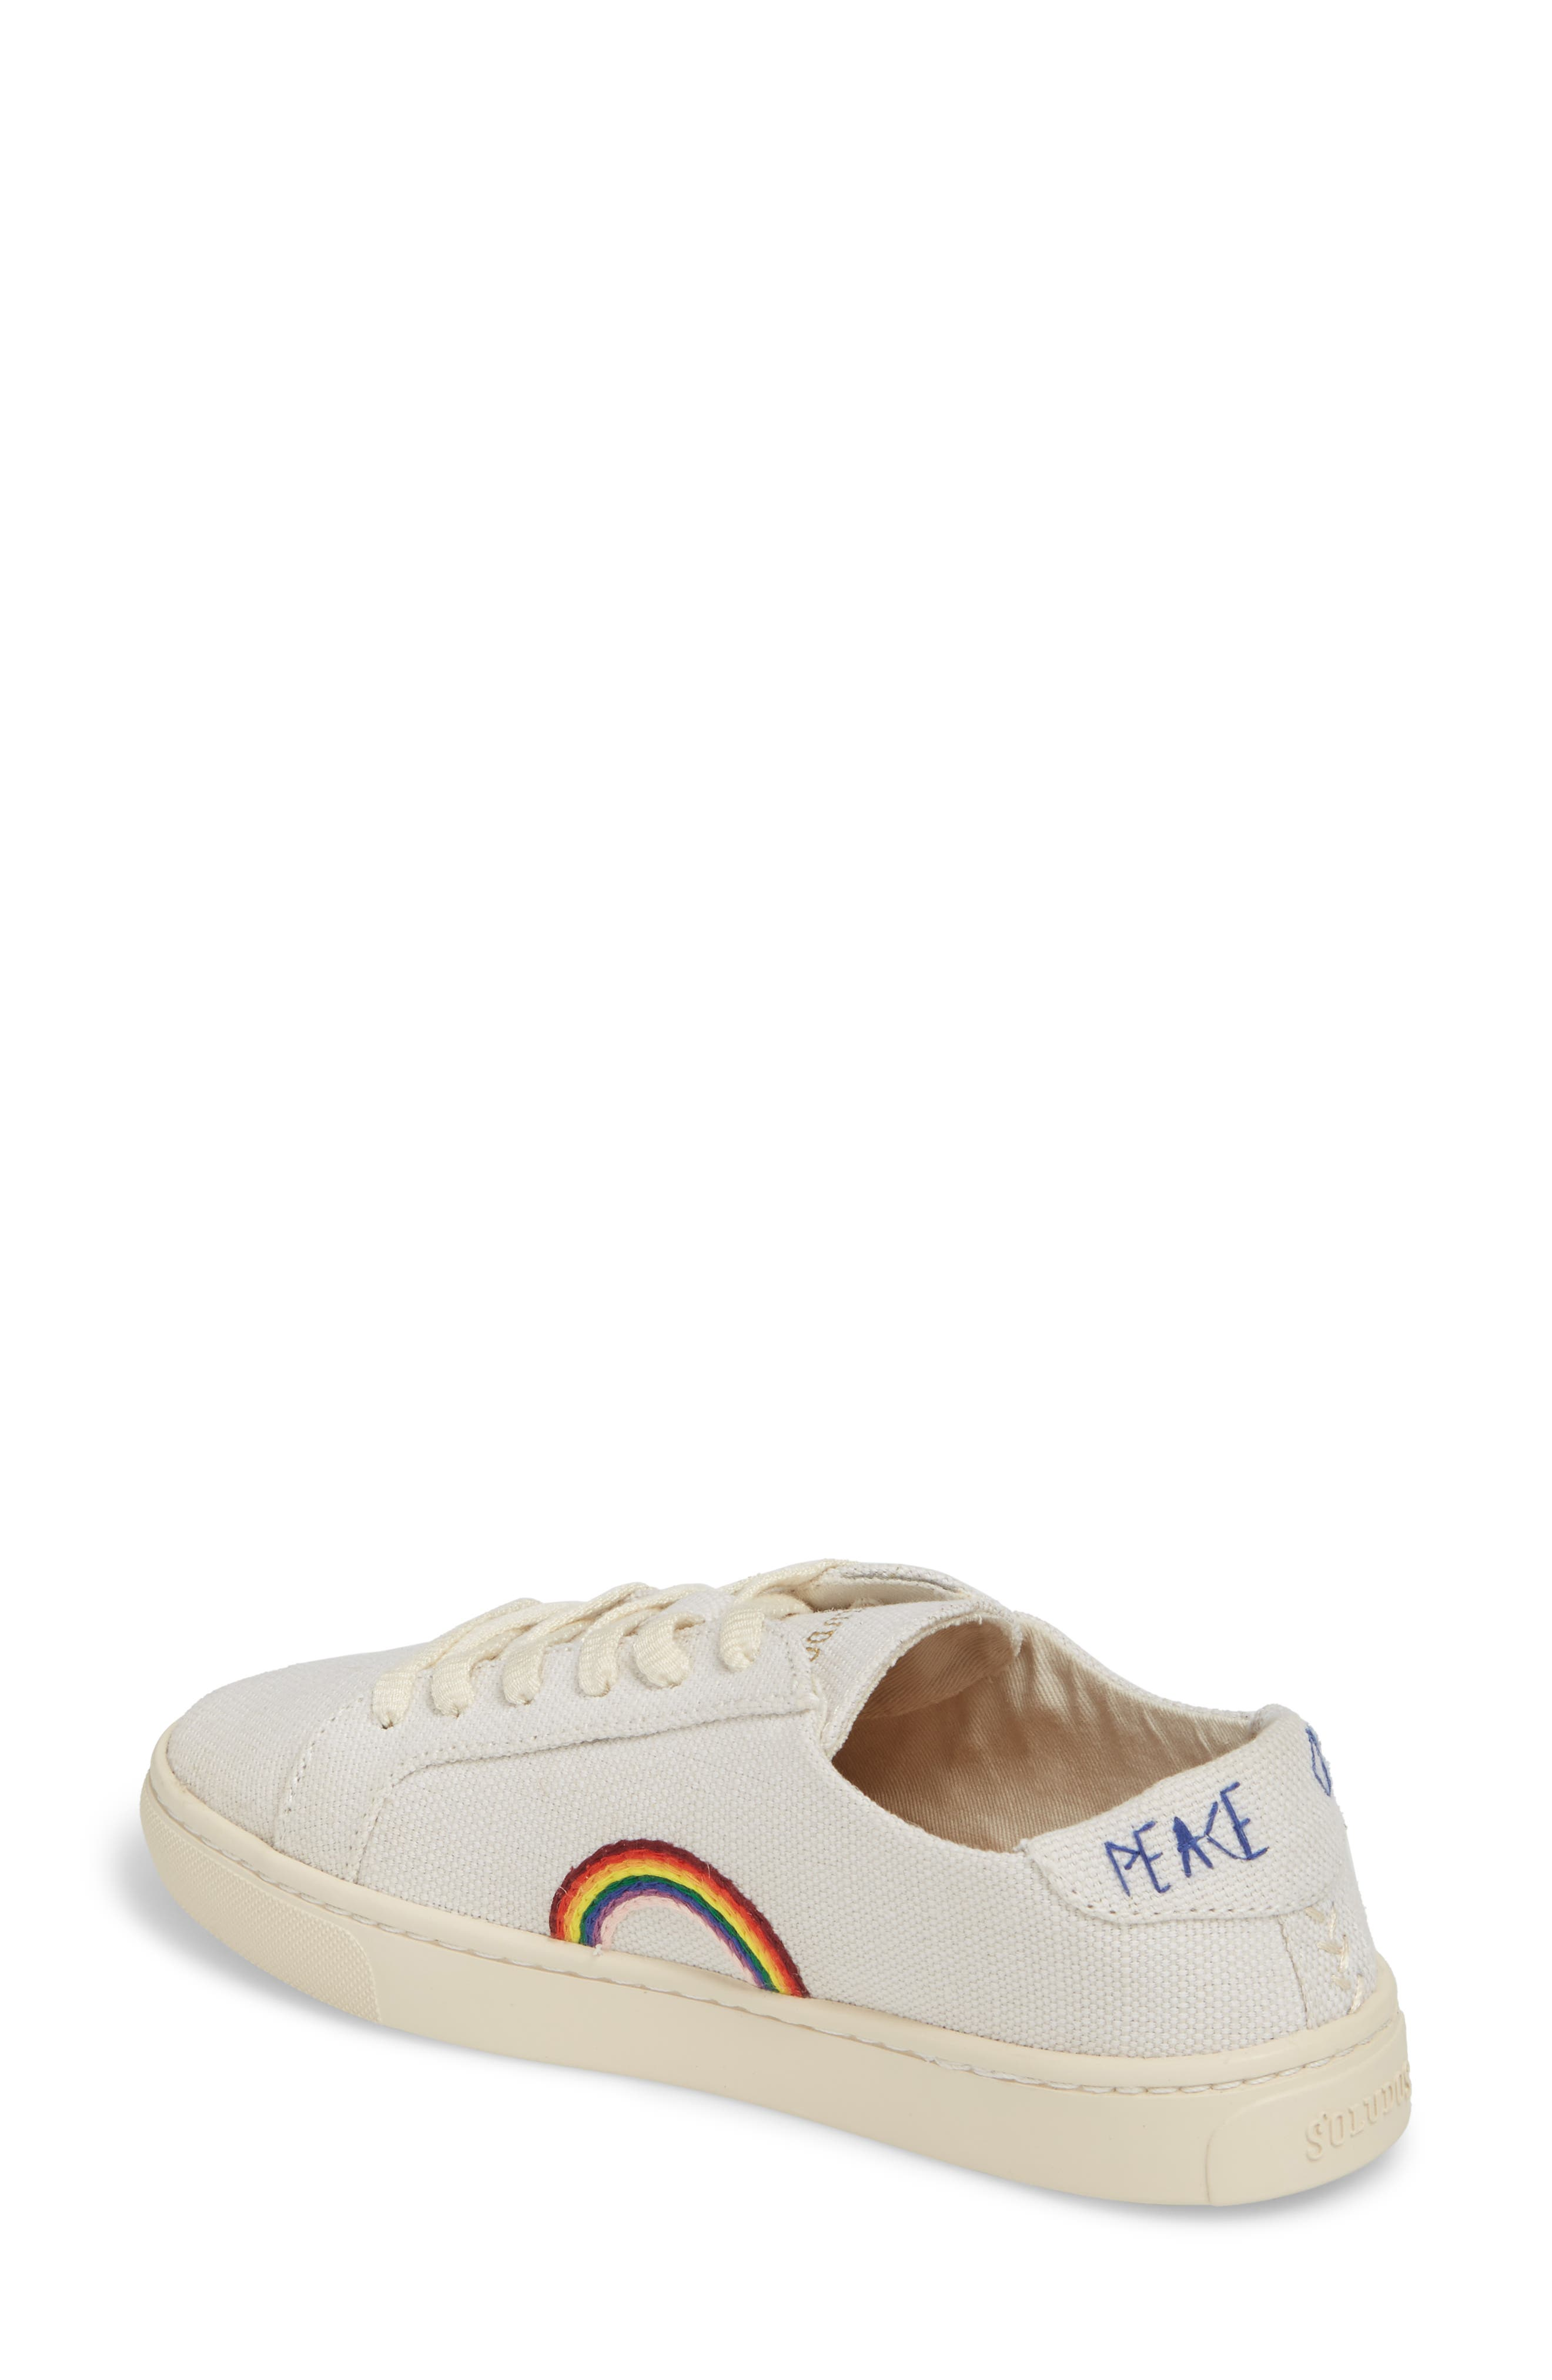 Embroidered Low Top Sneaker,                             Alternate thumbnail 3, color,                             WHITE CANVAS